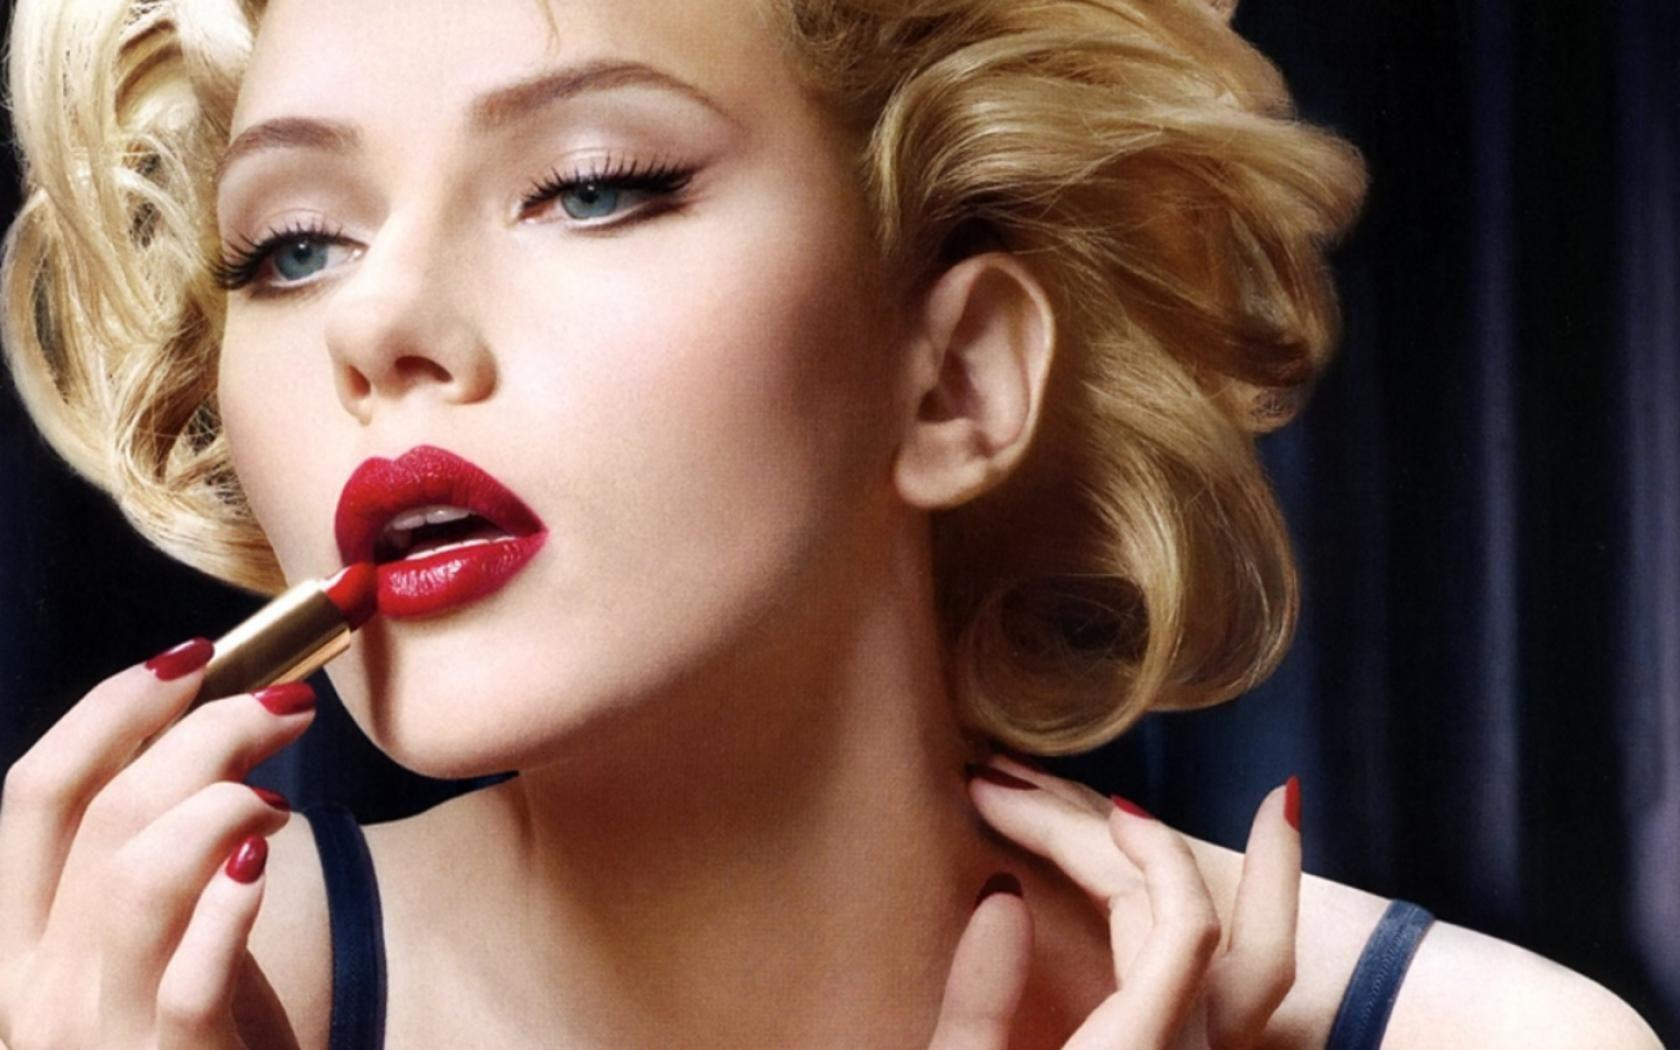 {New*} Scarlett Johansson Wallpapers, Pictures, Images & Photos